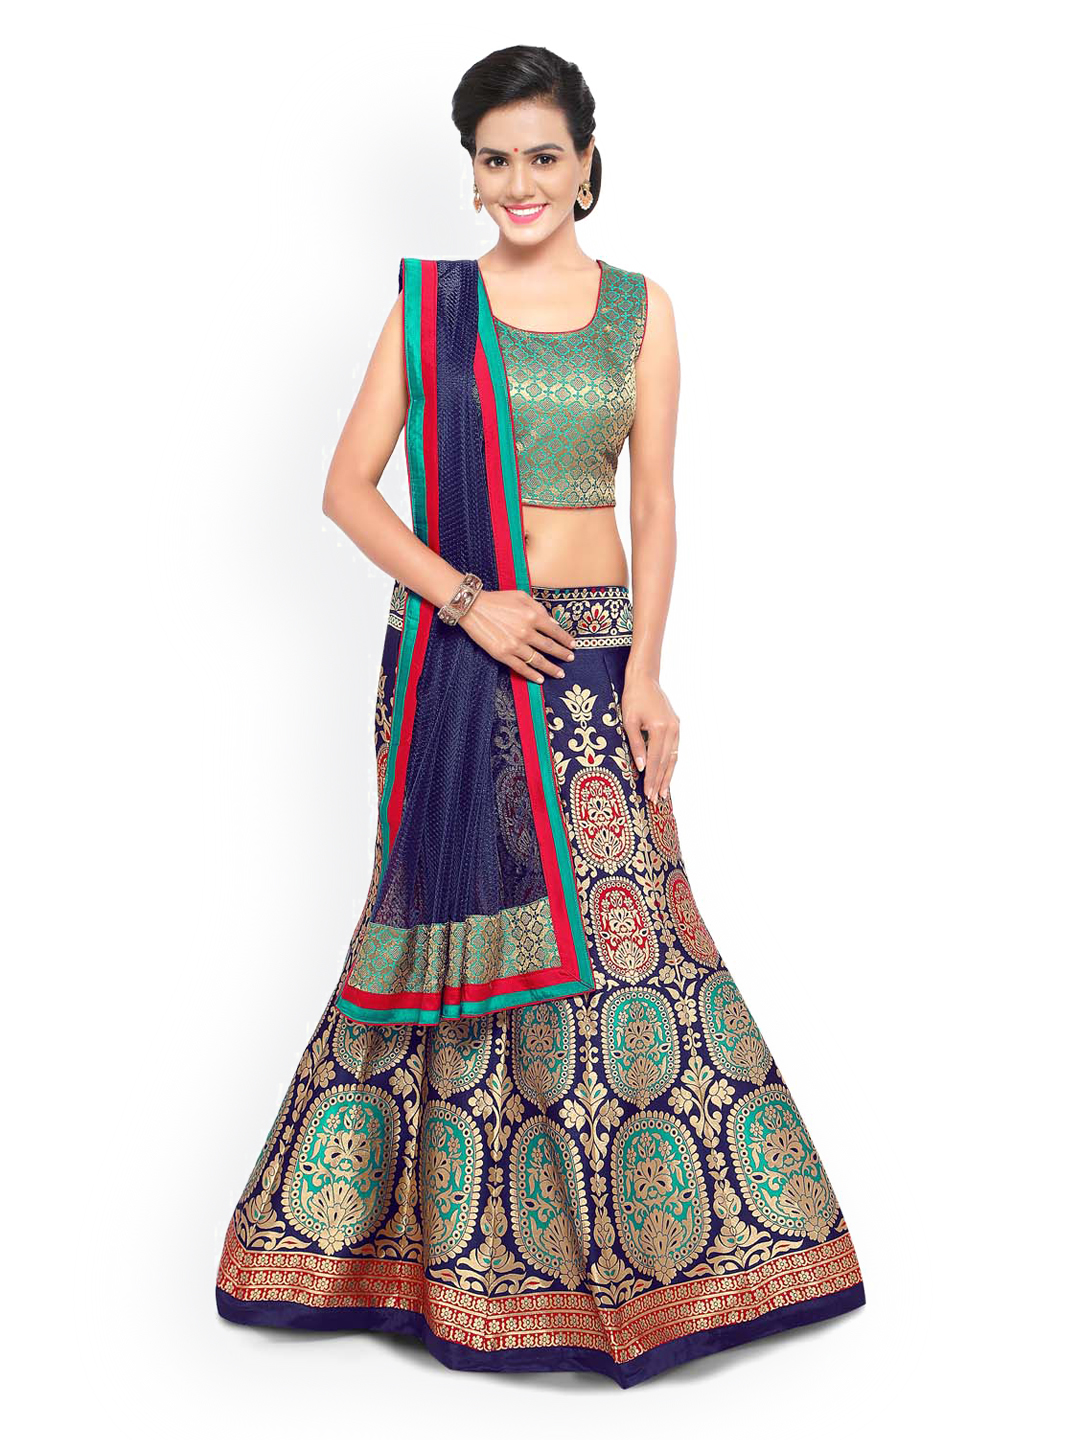 Be The Ethnic Diva With Designer Lehengas From Myntra The